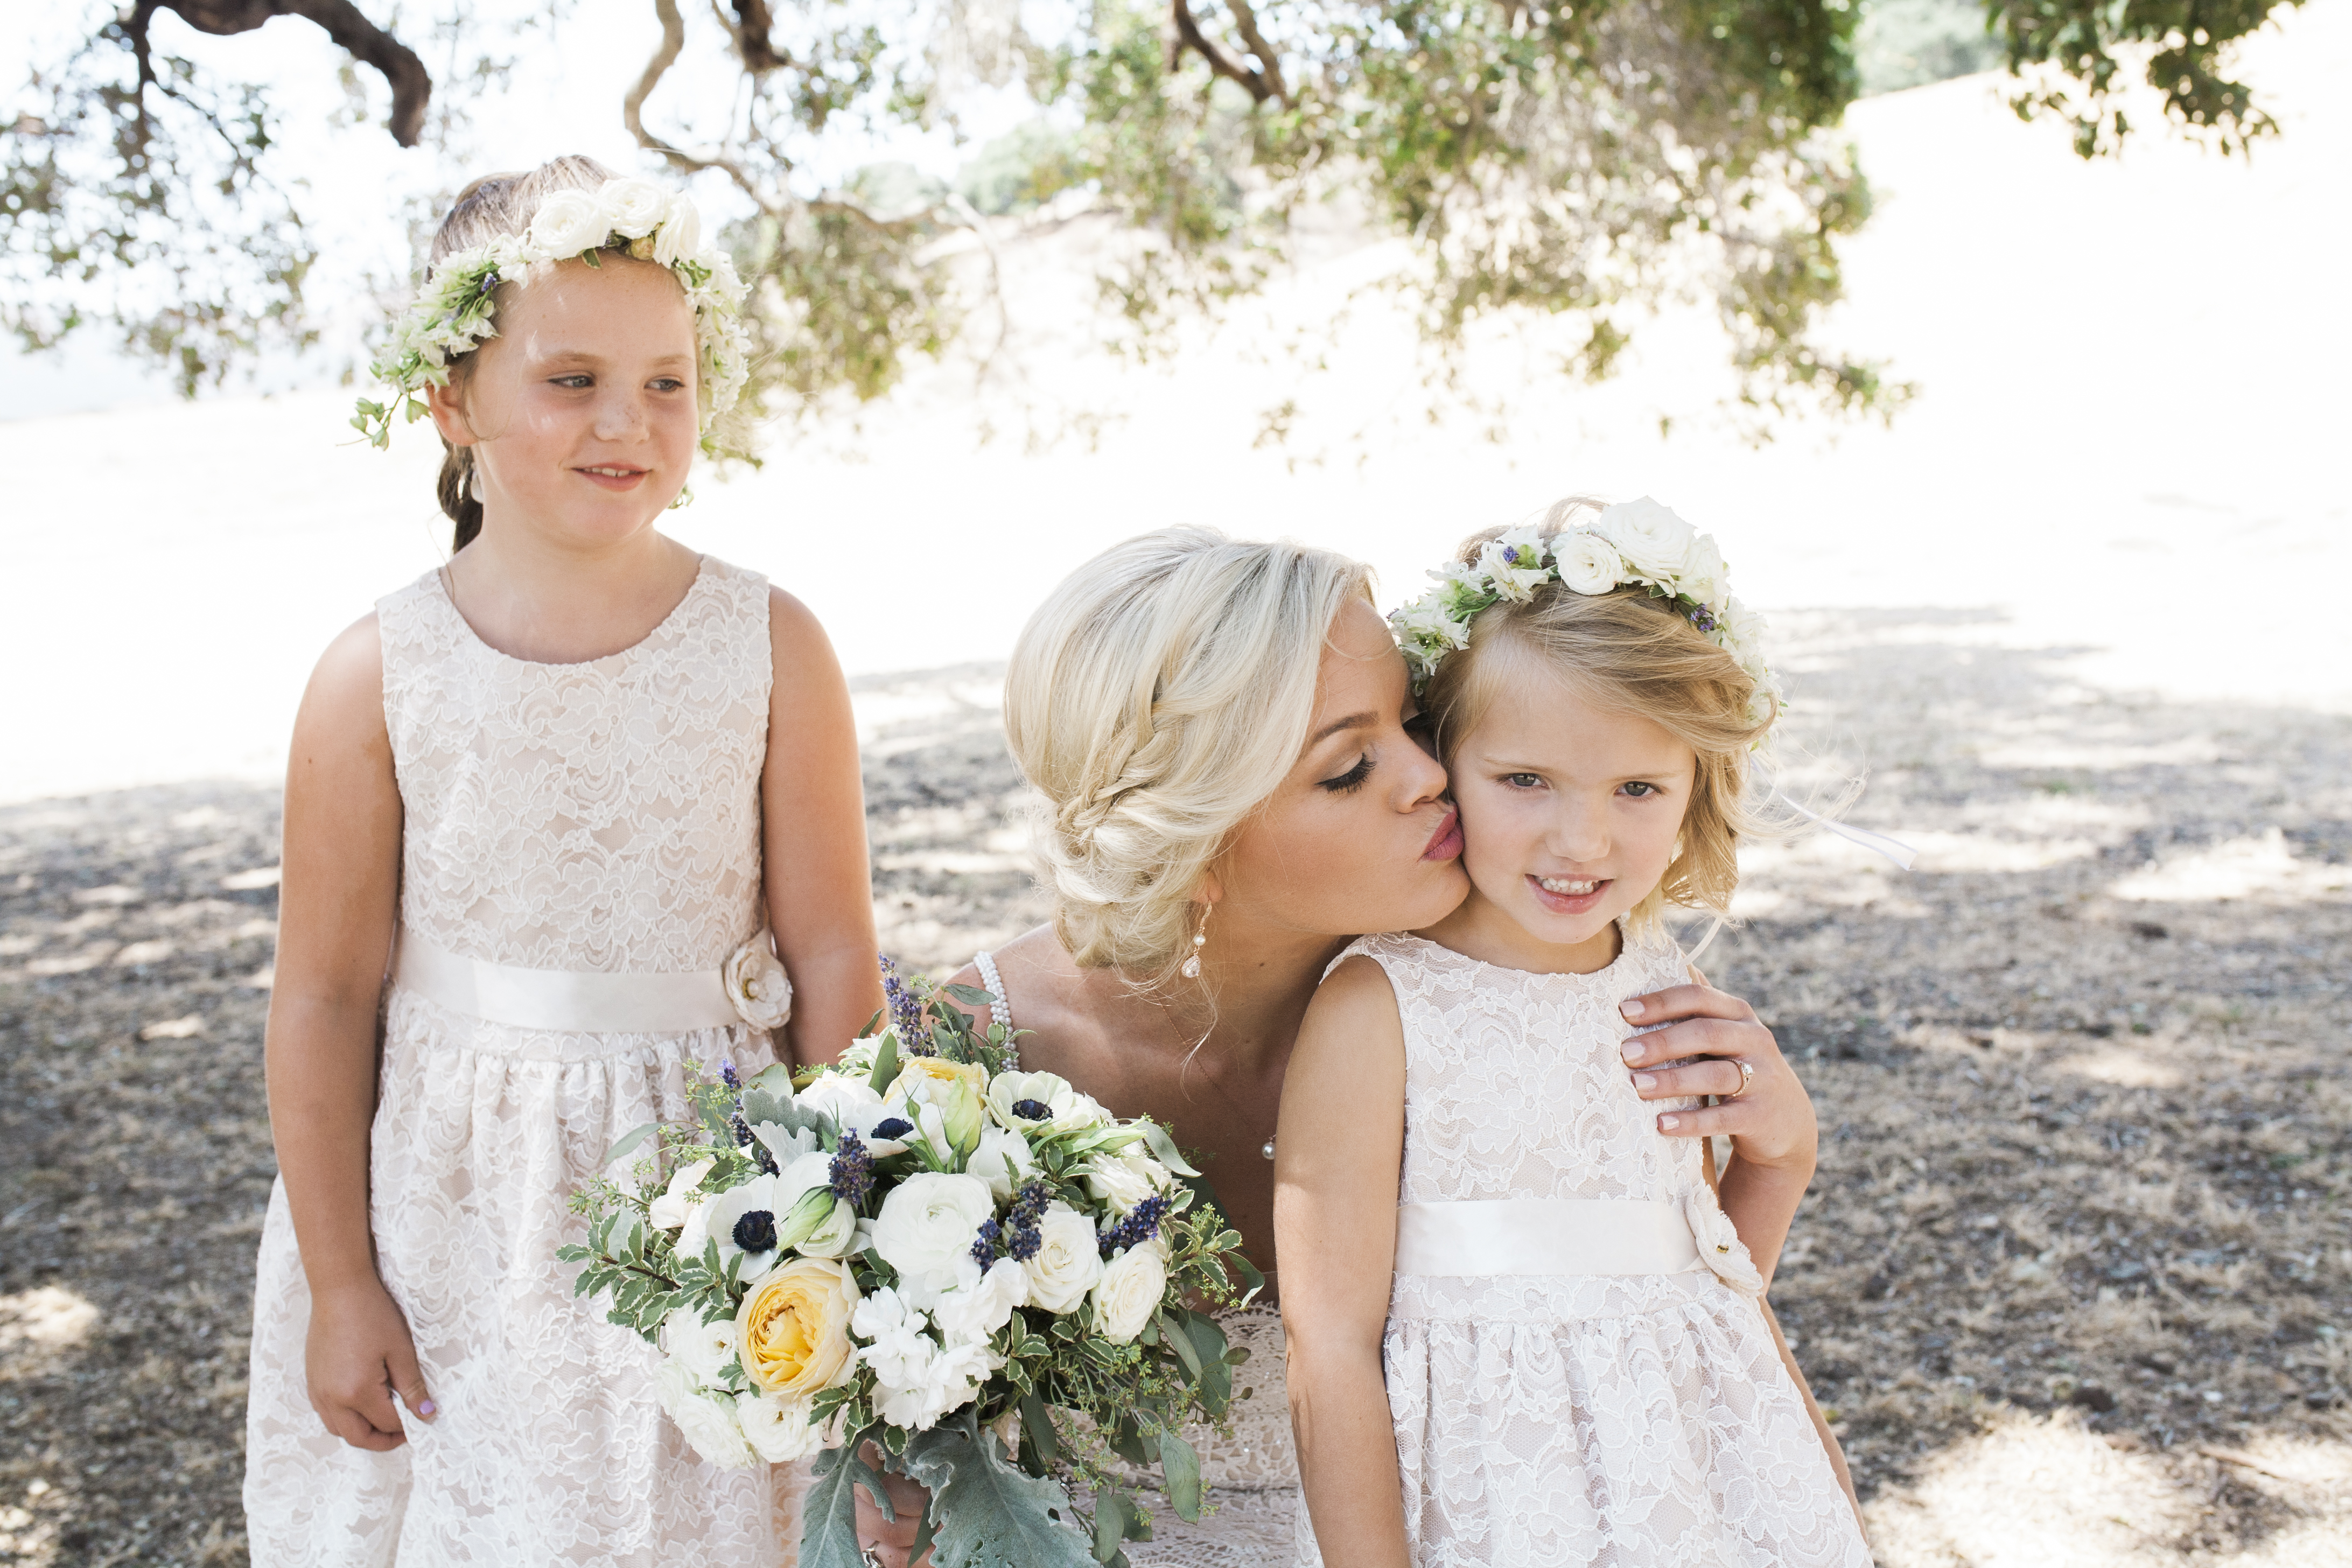 Loomis Ranch-Shannon McMillen Photography-28